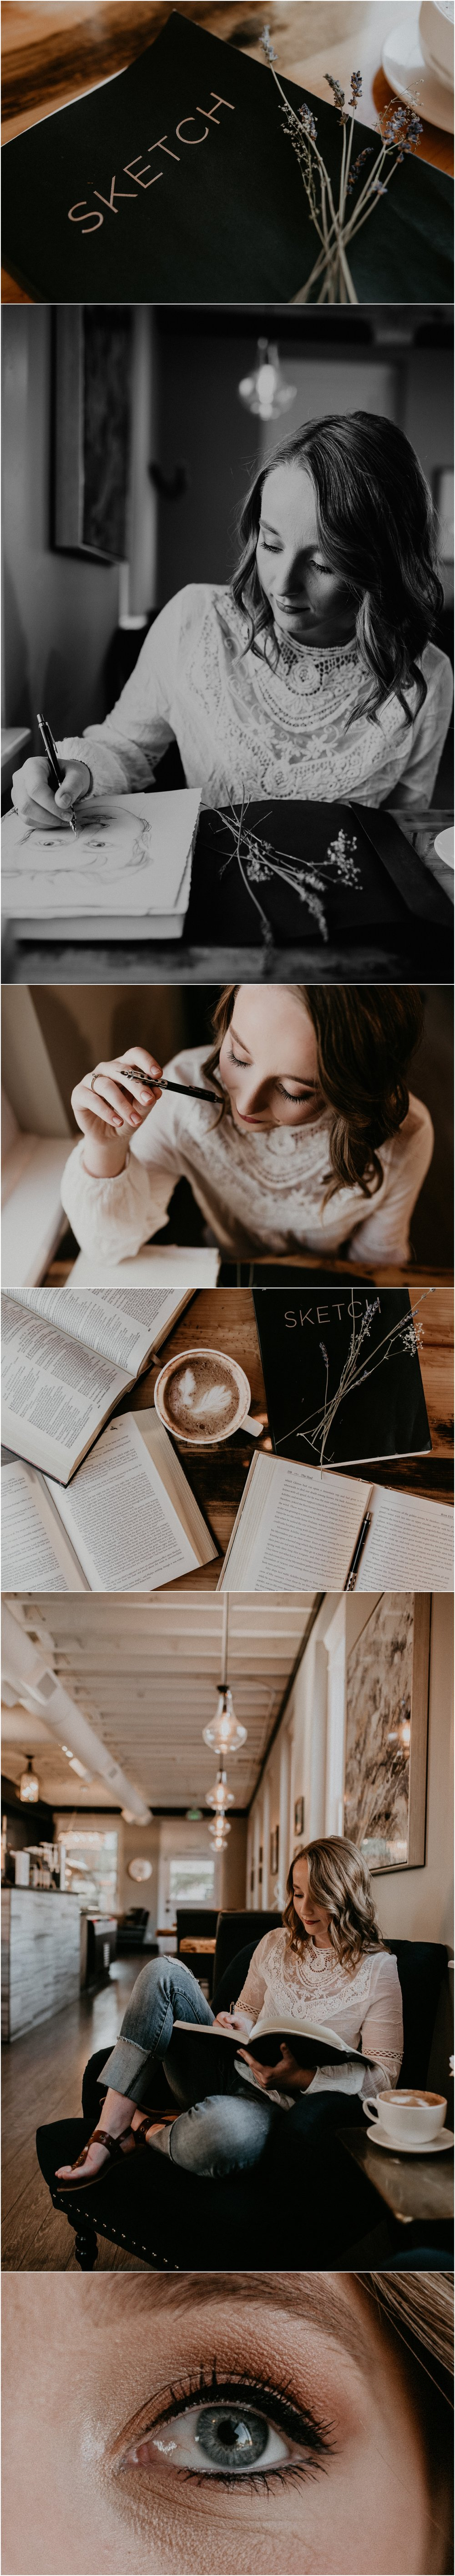 Makayla Madden Photography Boise Senior Photographer Eagle Idaho Brim Coffee House Sketching Artistic Senior Pictures Class of 2018